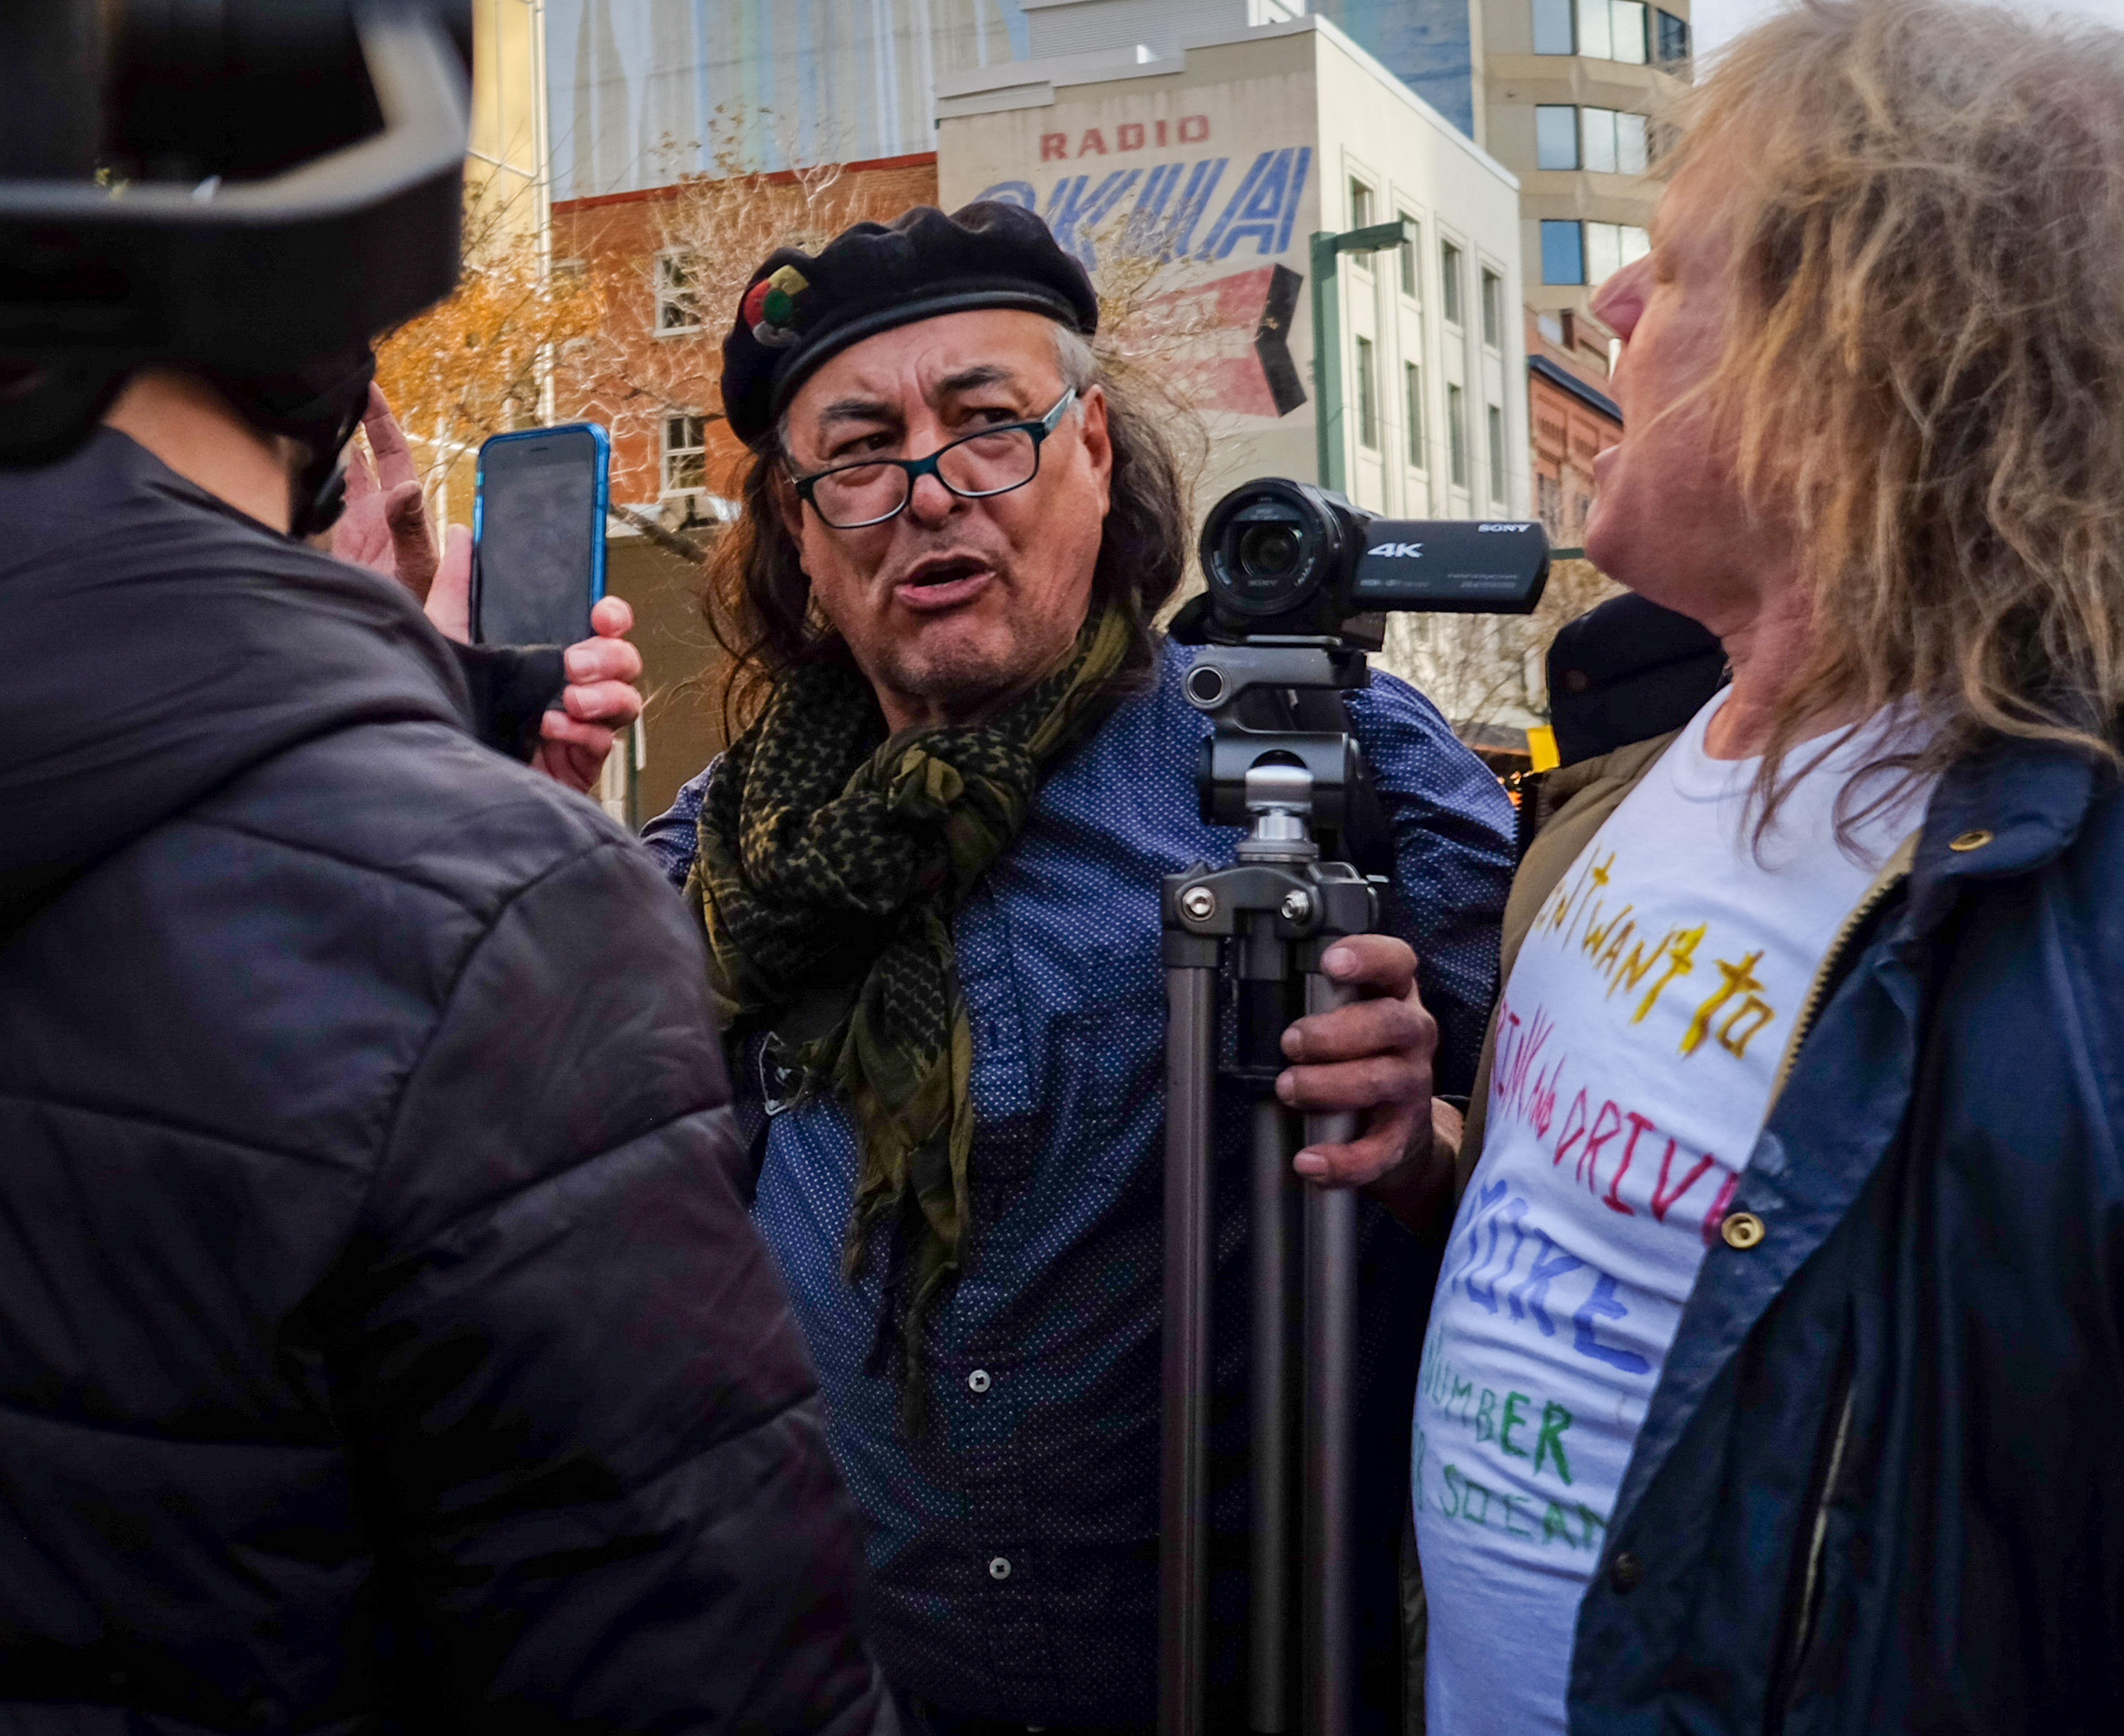 hedy bach images - climate strike - 19-2